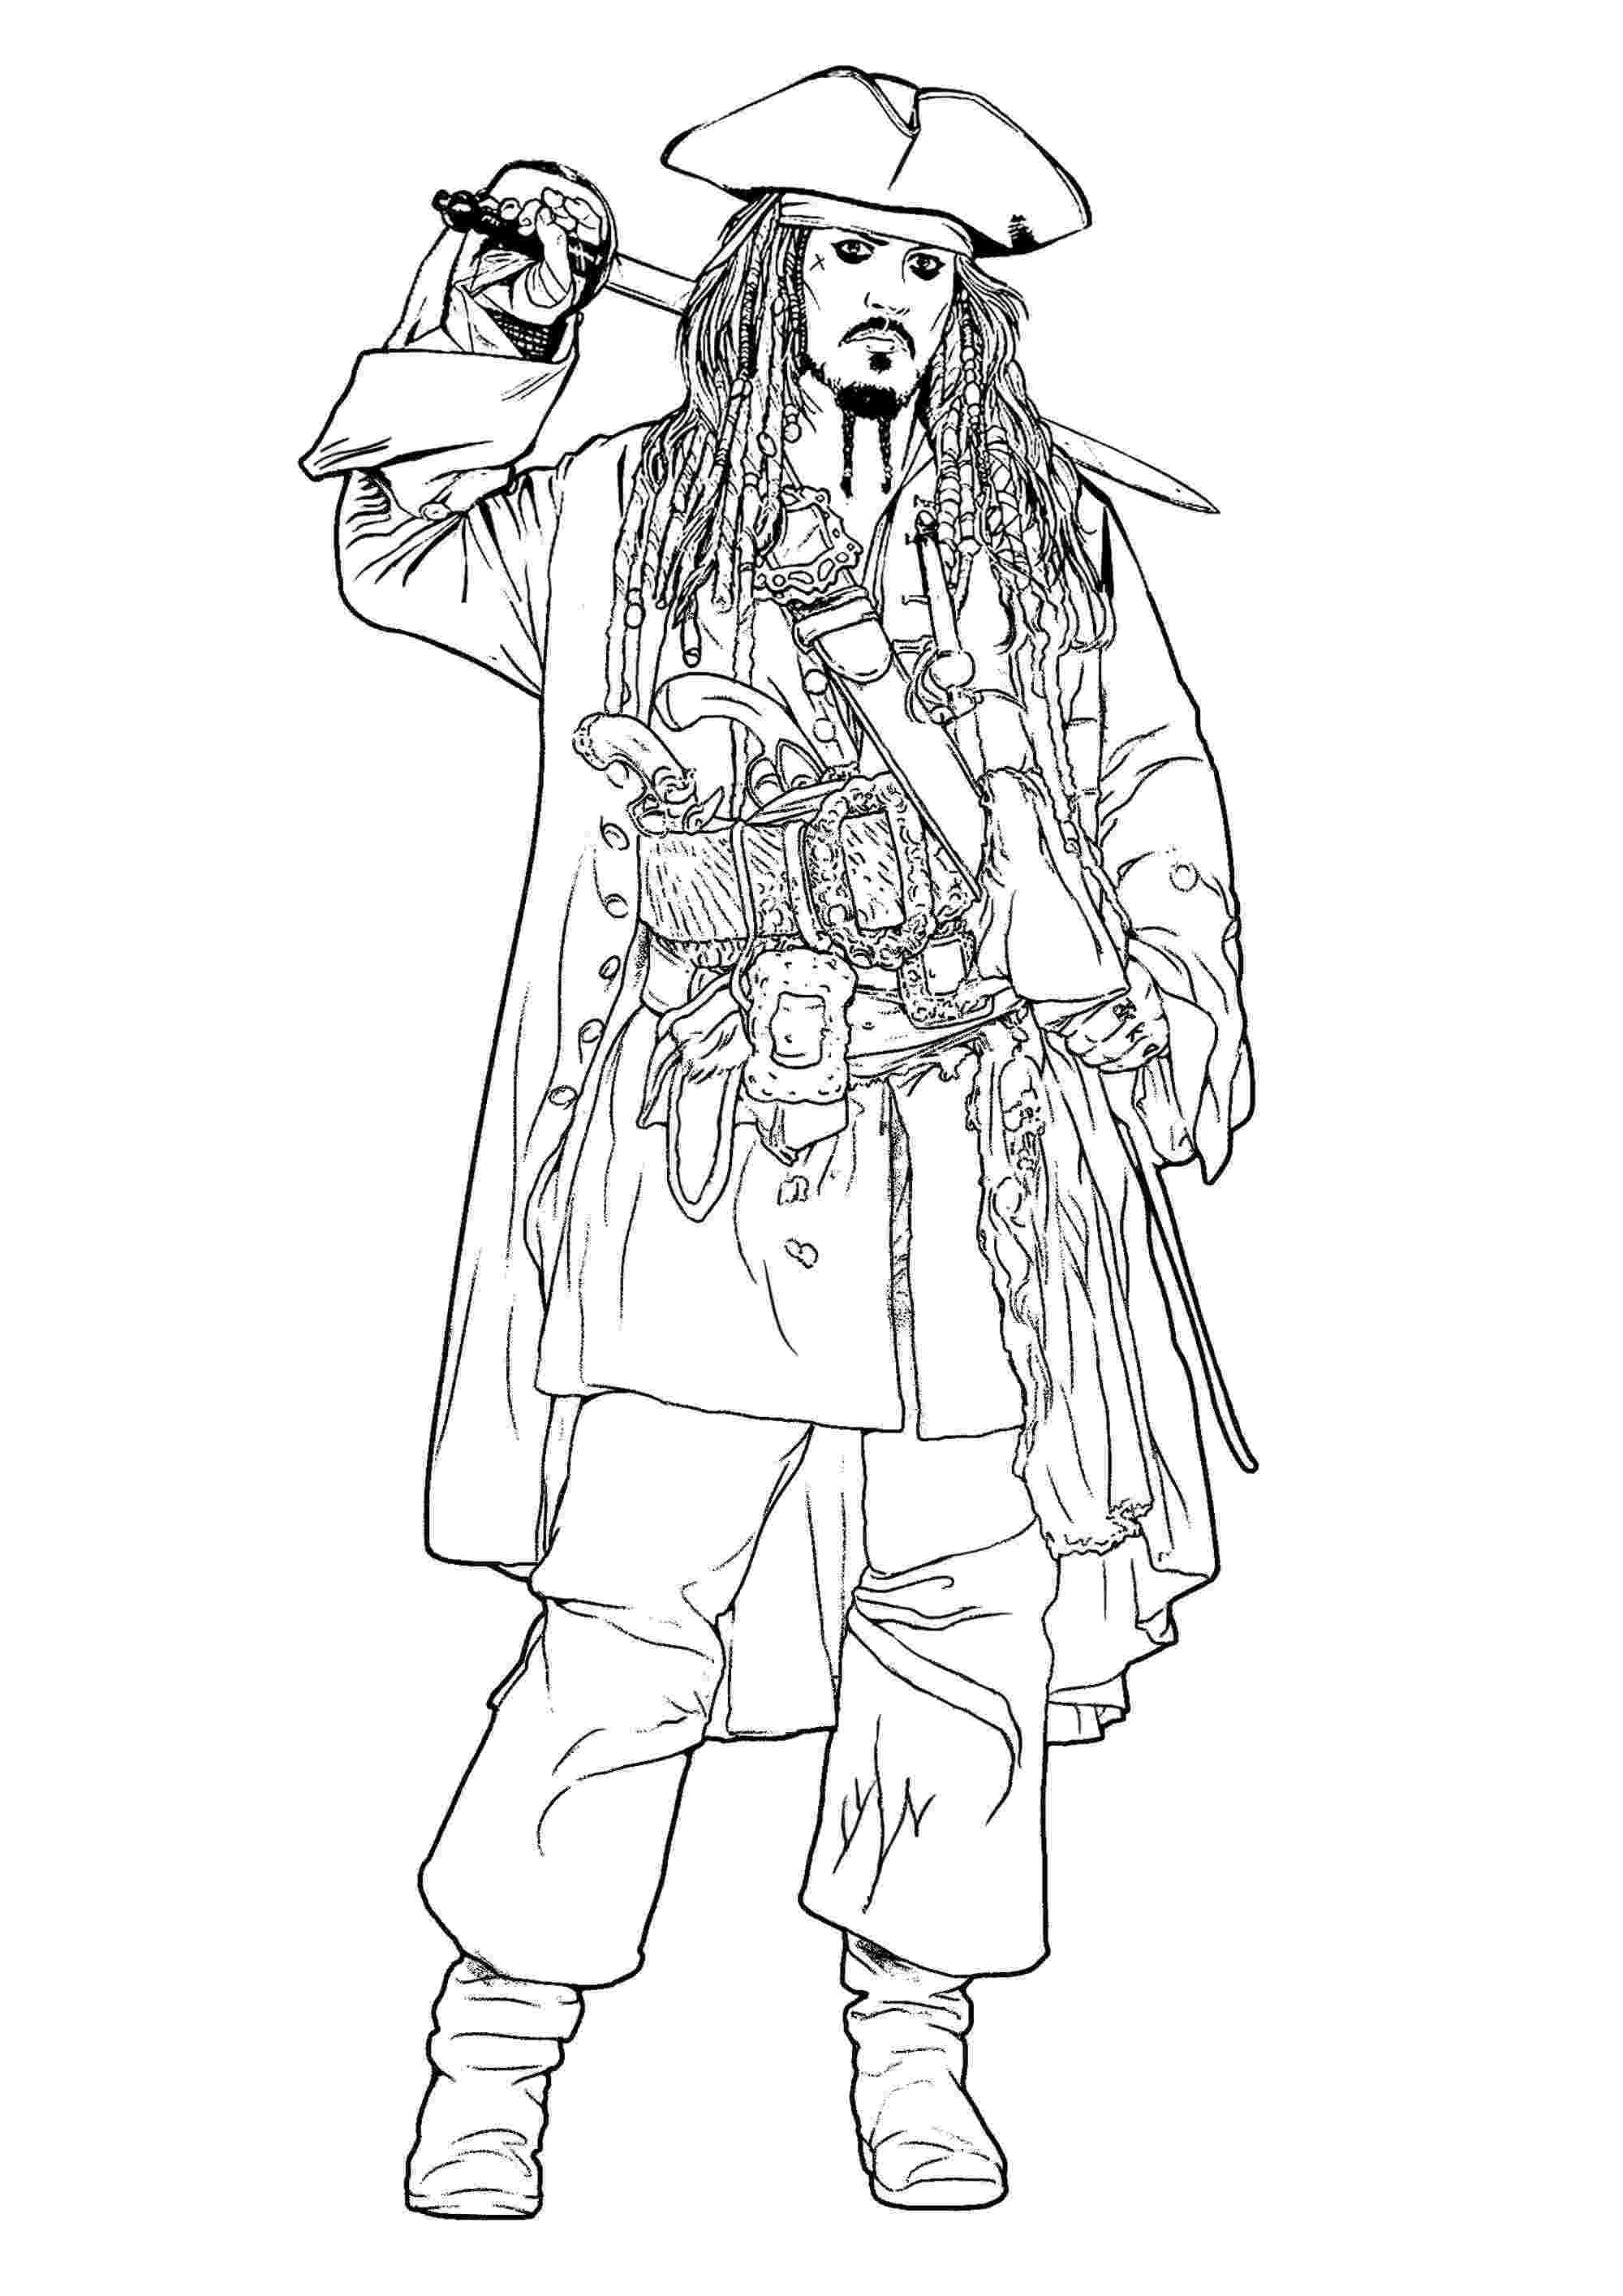 pirates of the caribbean pictures to print 135 best images about pirate printables on pinterest of pirates caribbean print to pictures the